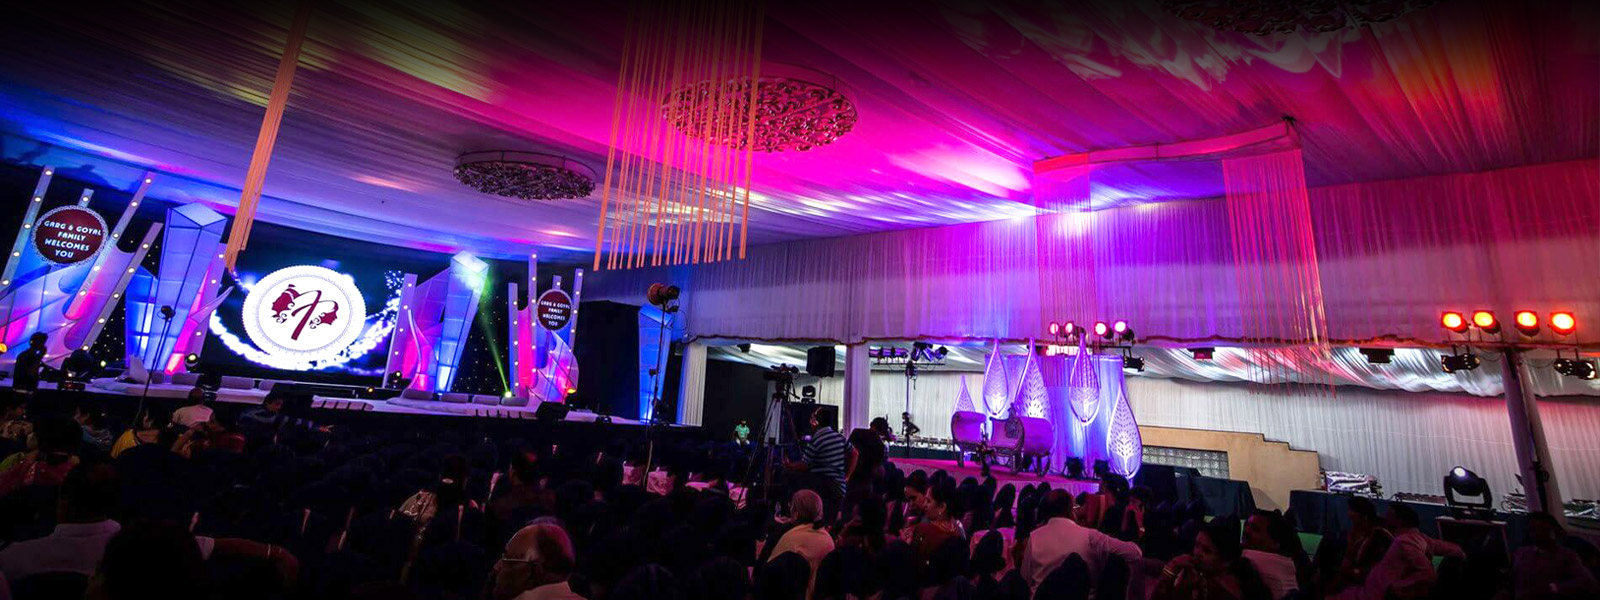 Wedding Events by  wedding event planner, management company